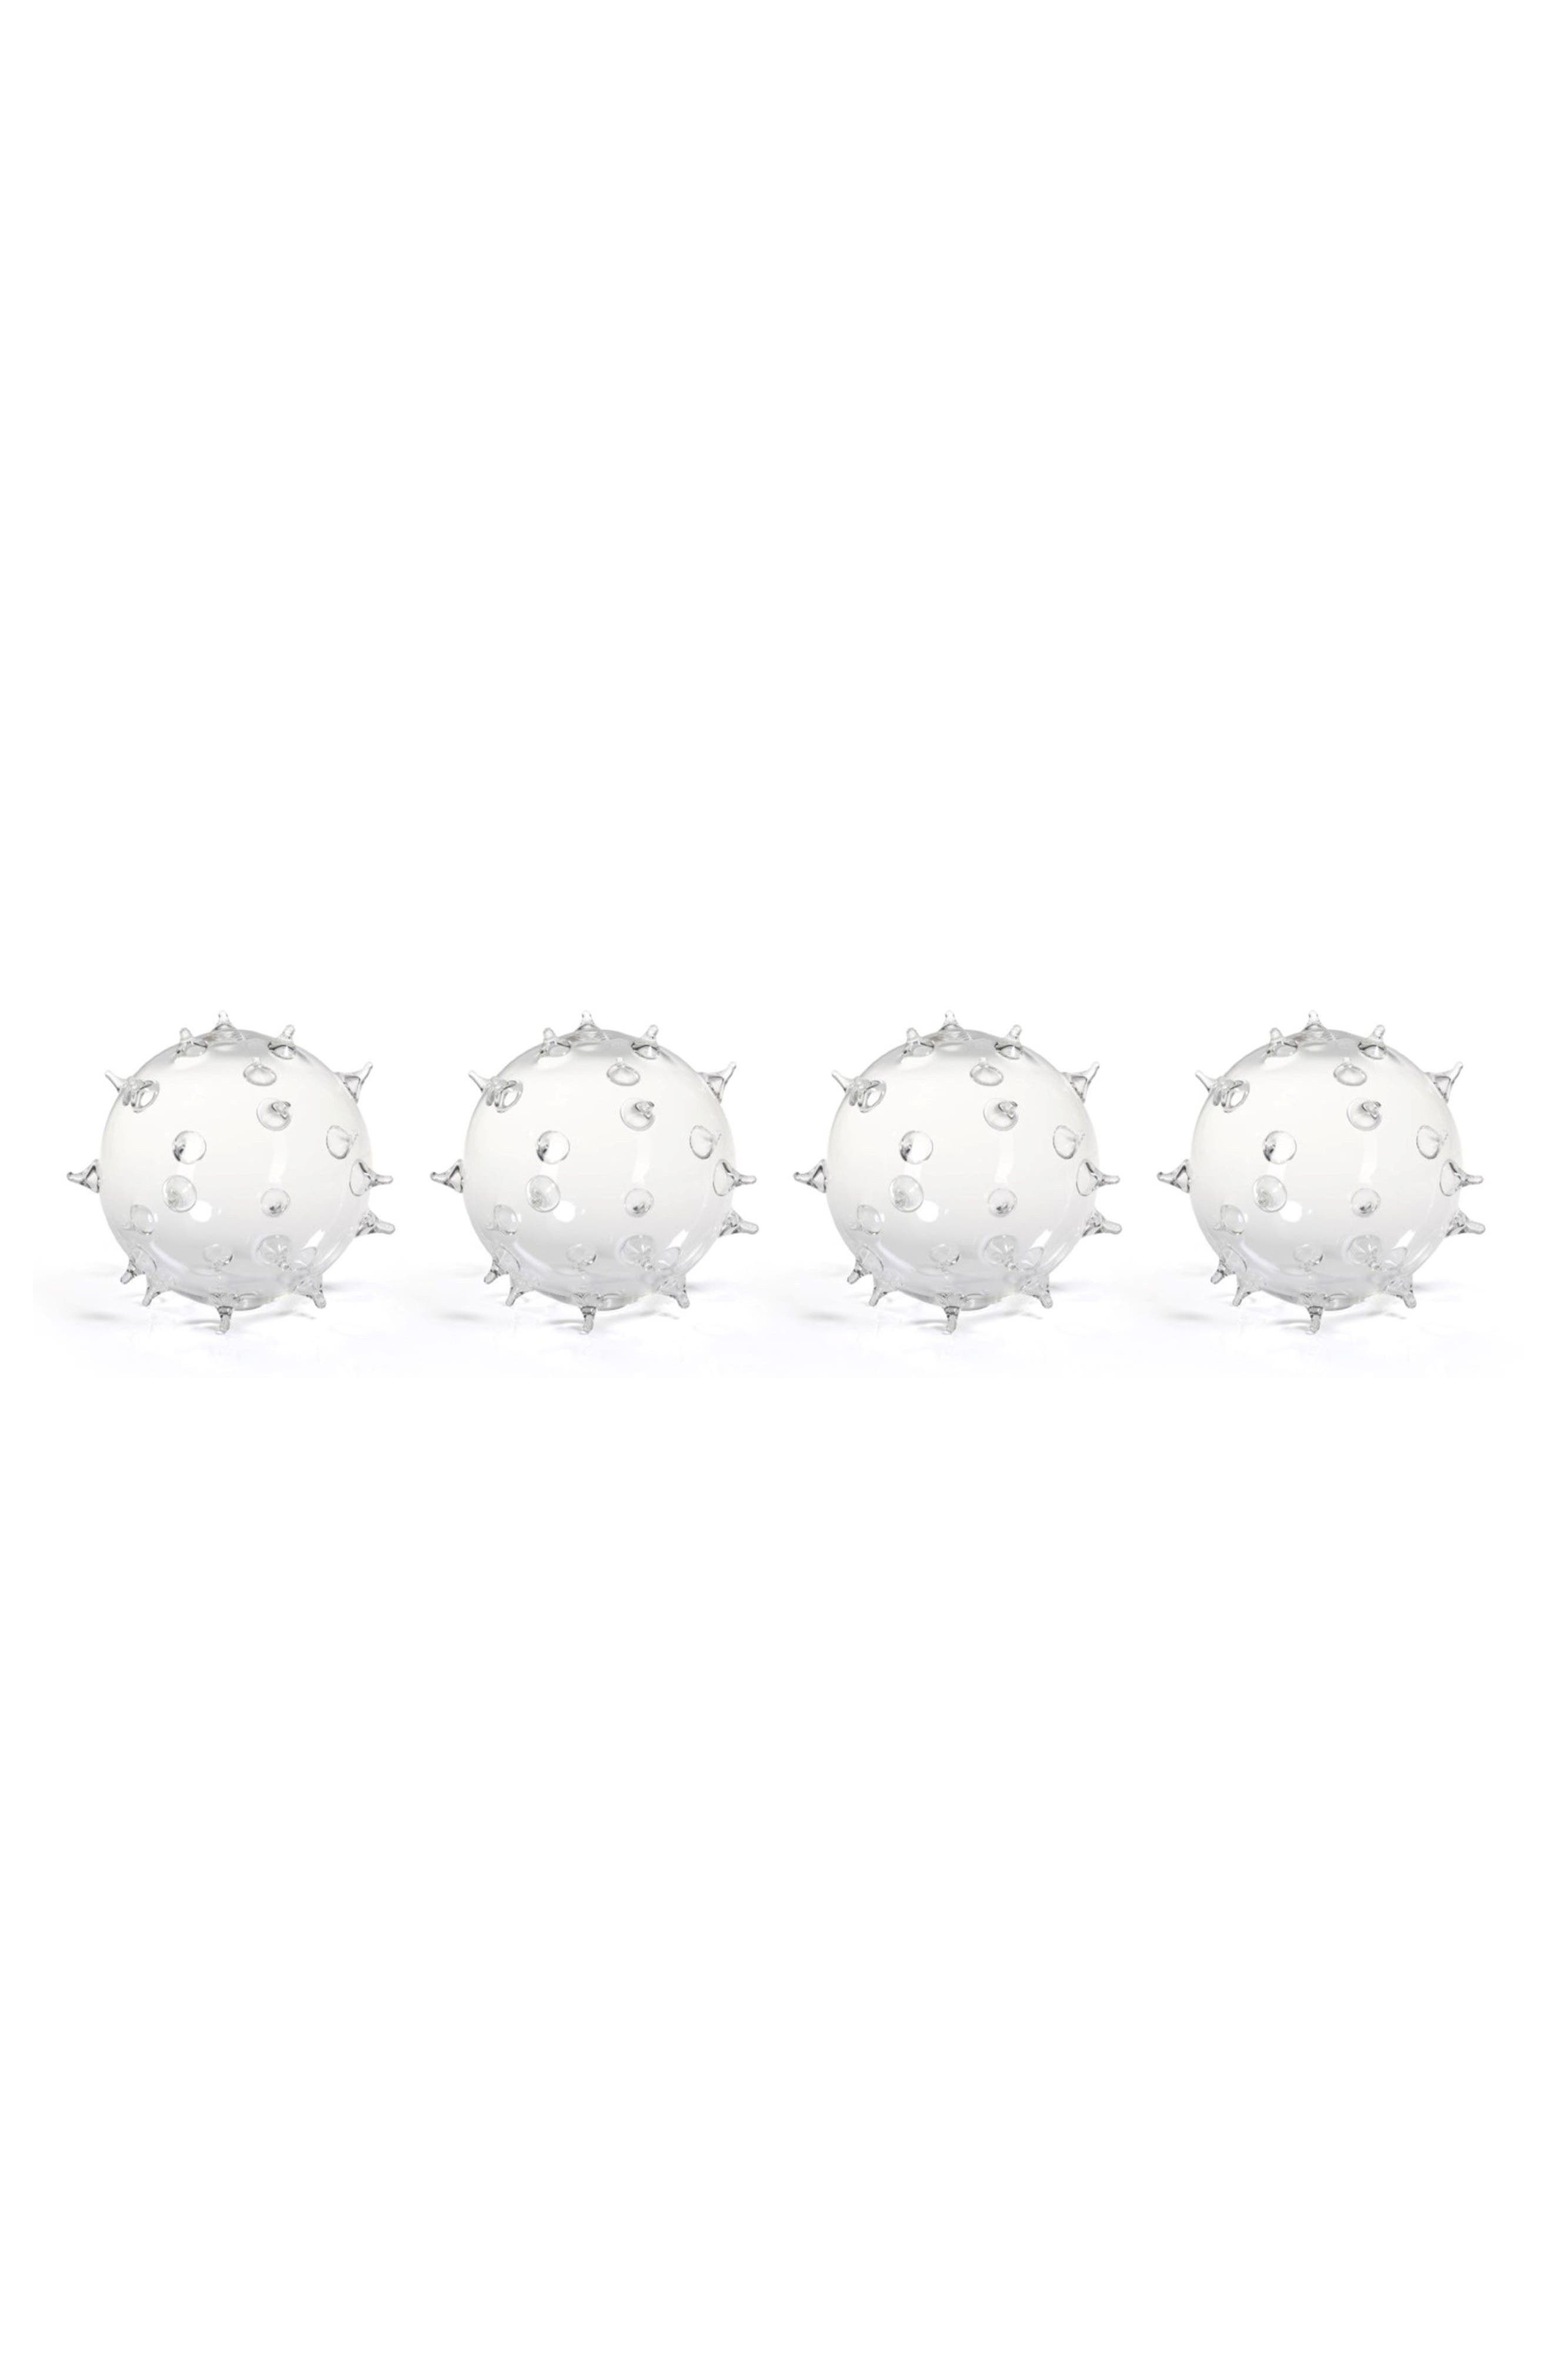 Suri Set of 4 Spiked Glass Vases,                             Main thumbnail 1, color,